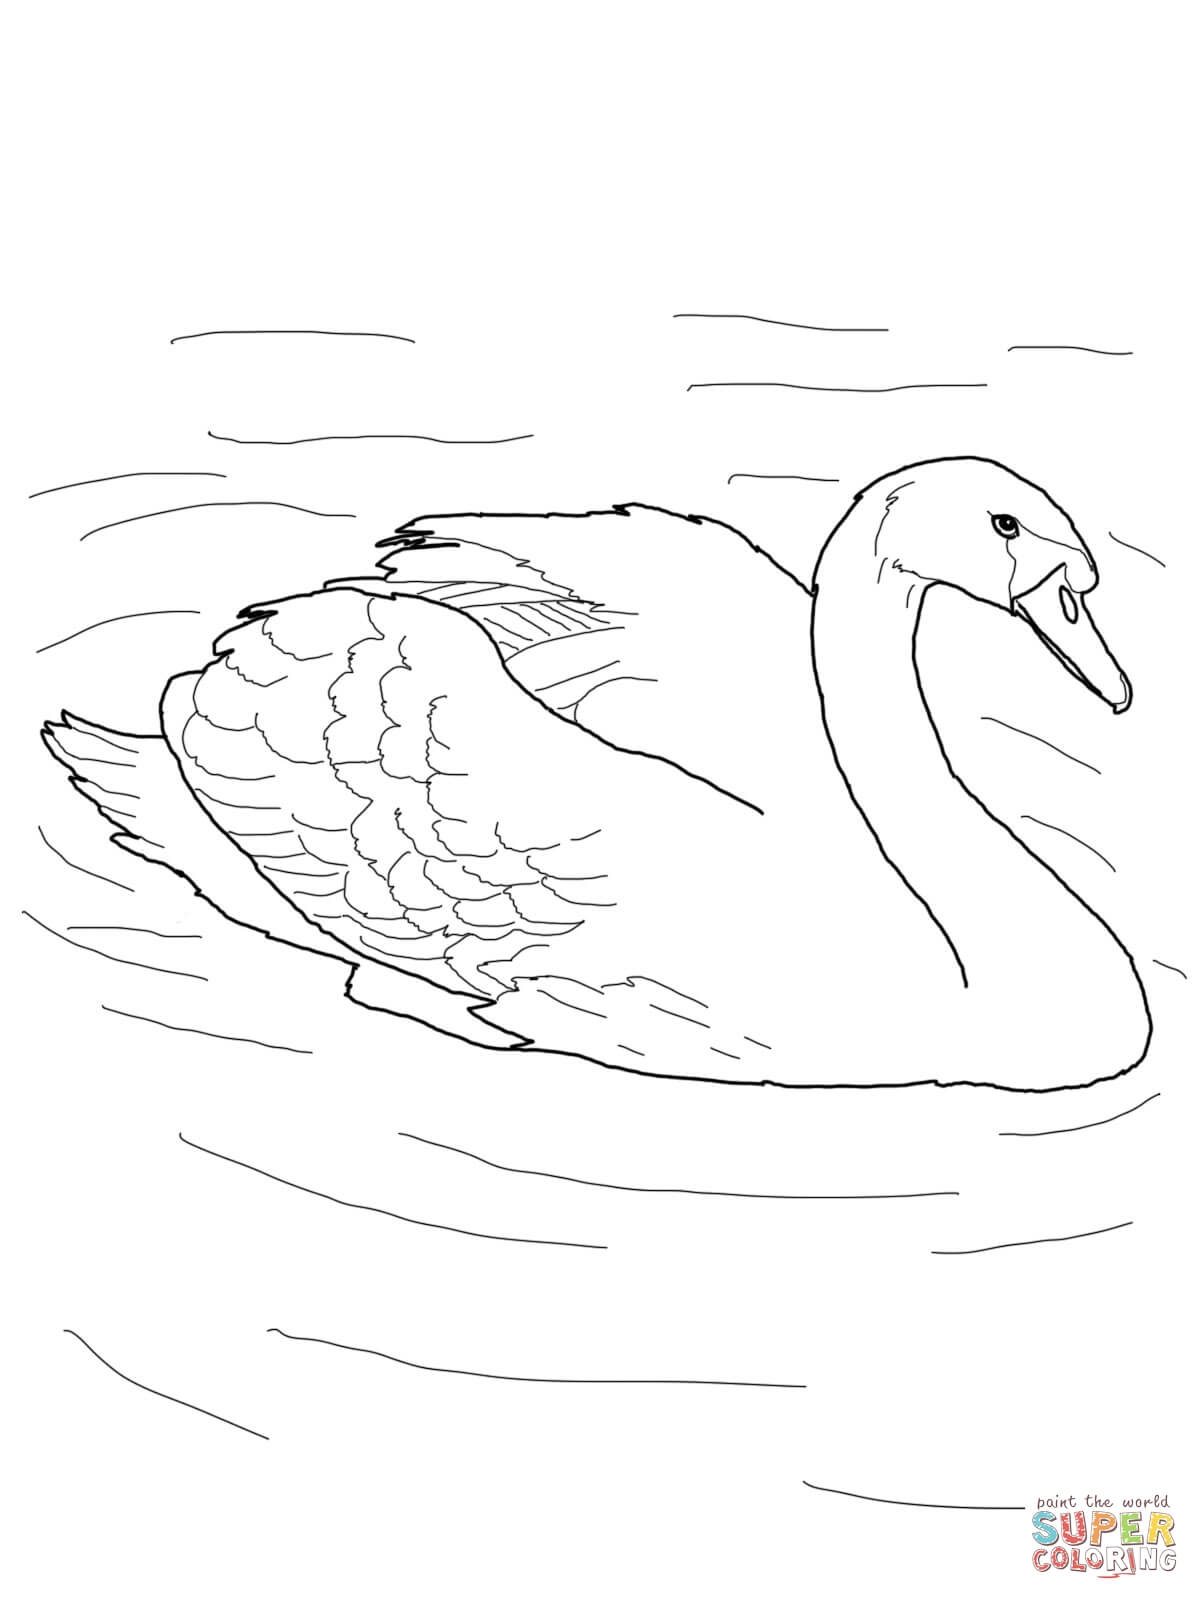 Pond Coloring Pages - Mute Swan In A Pond Coloring Line